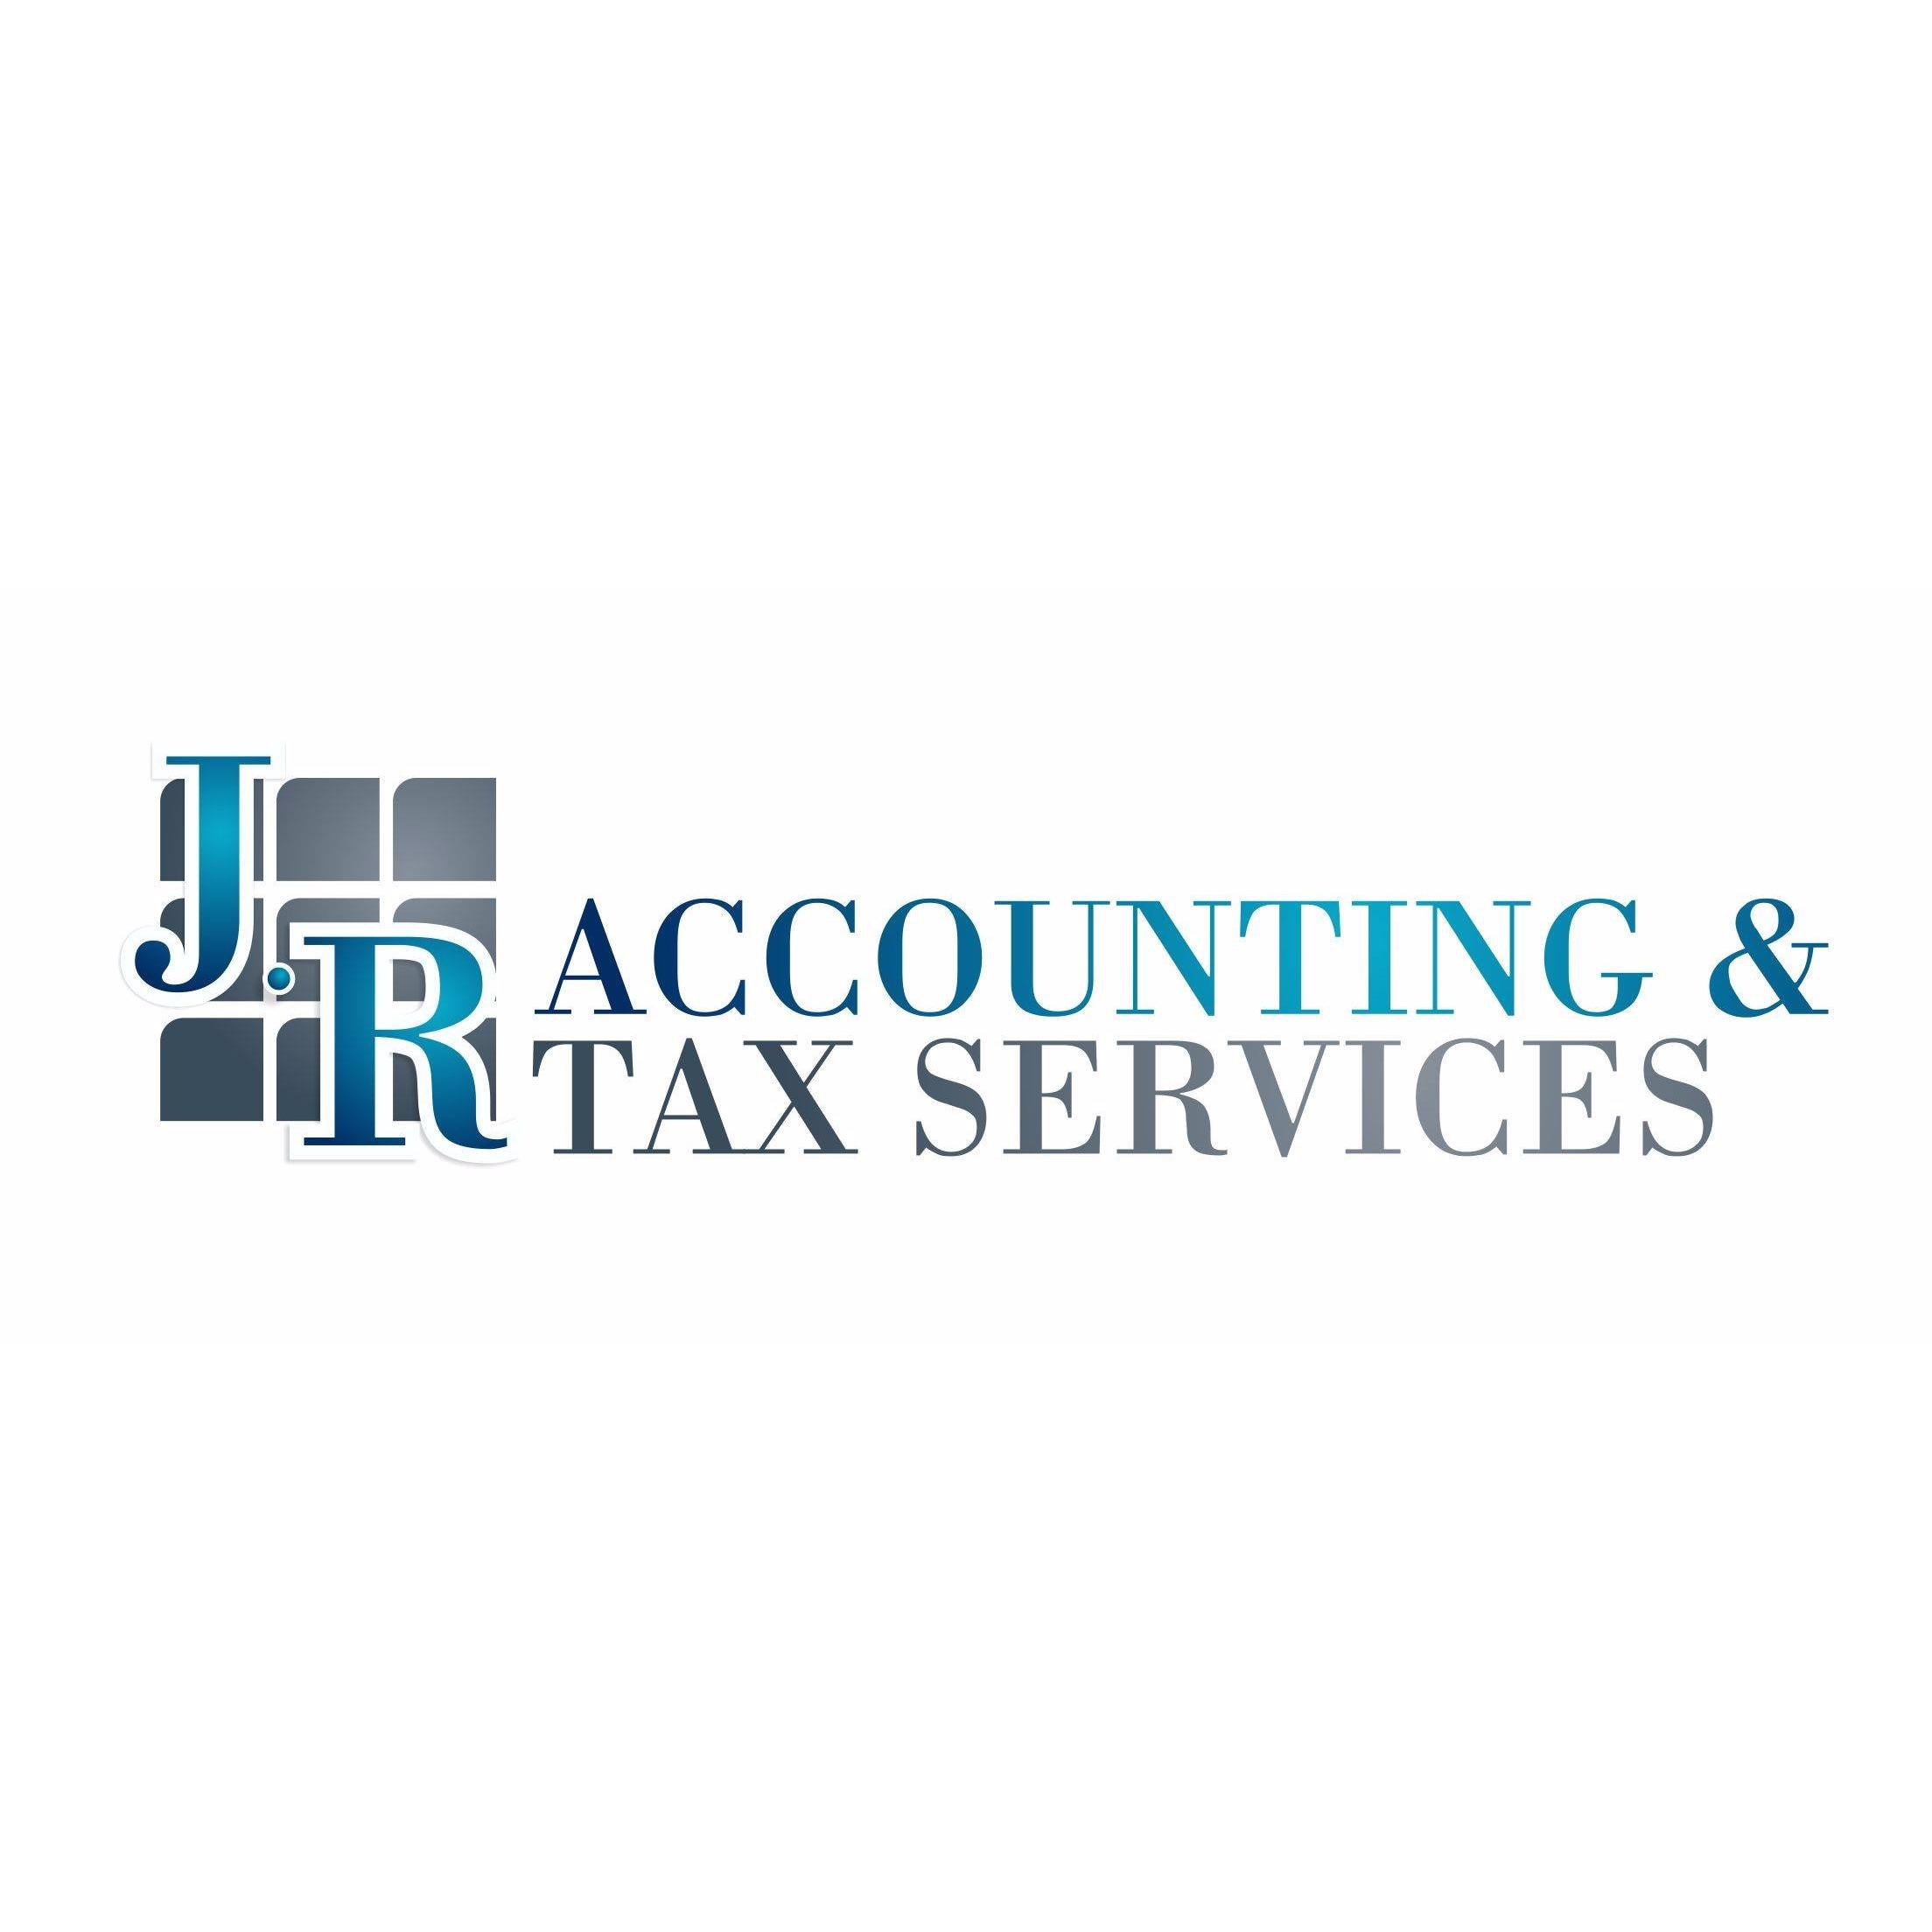 JR Accounting and Tax Services